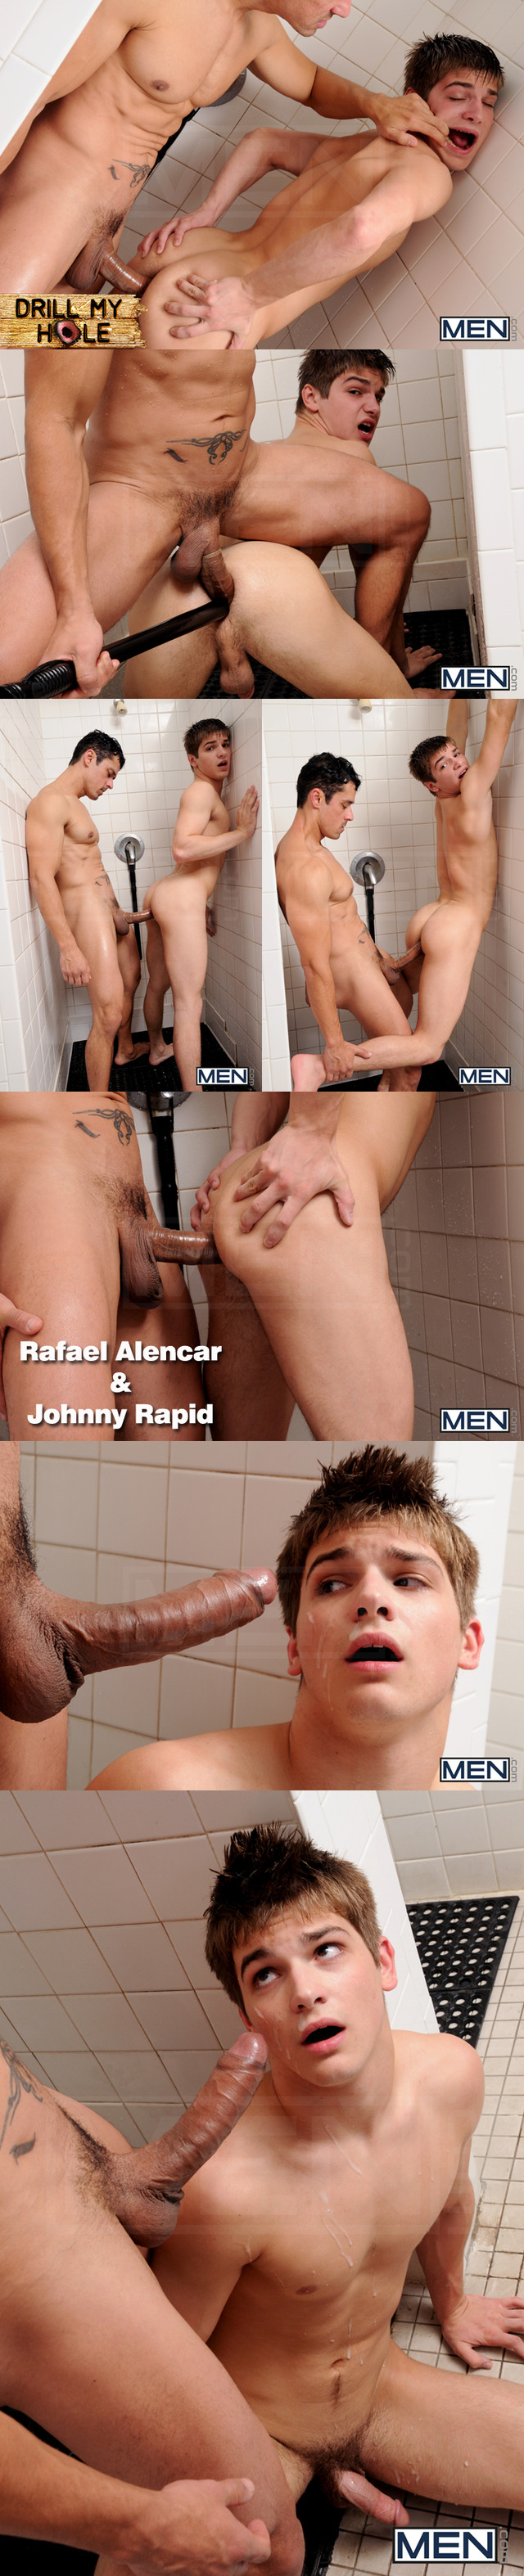 Johnny Rapid Porn johnny rapid hardcore shower prison rafael alencar